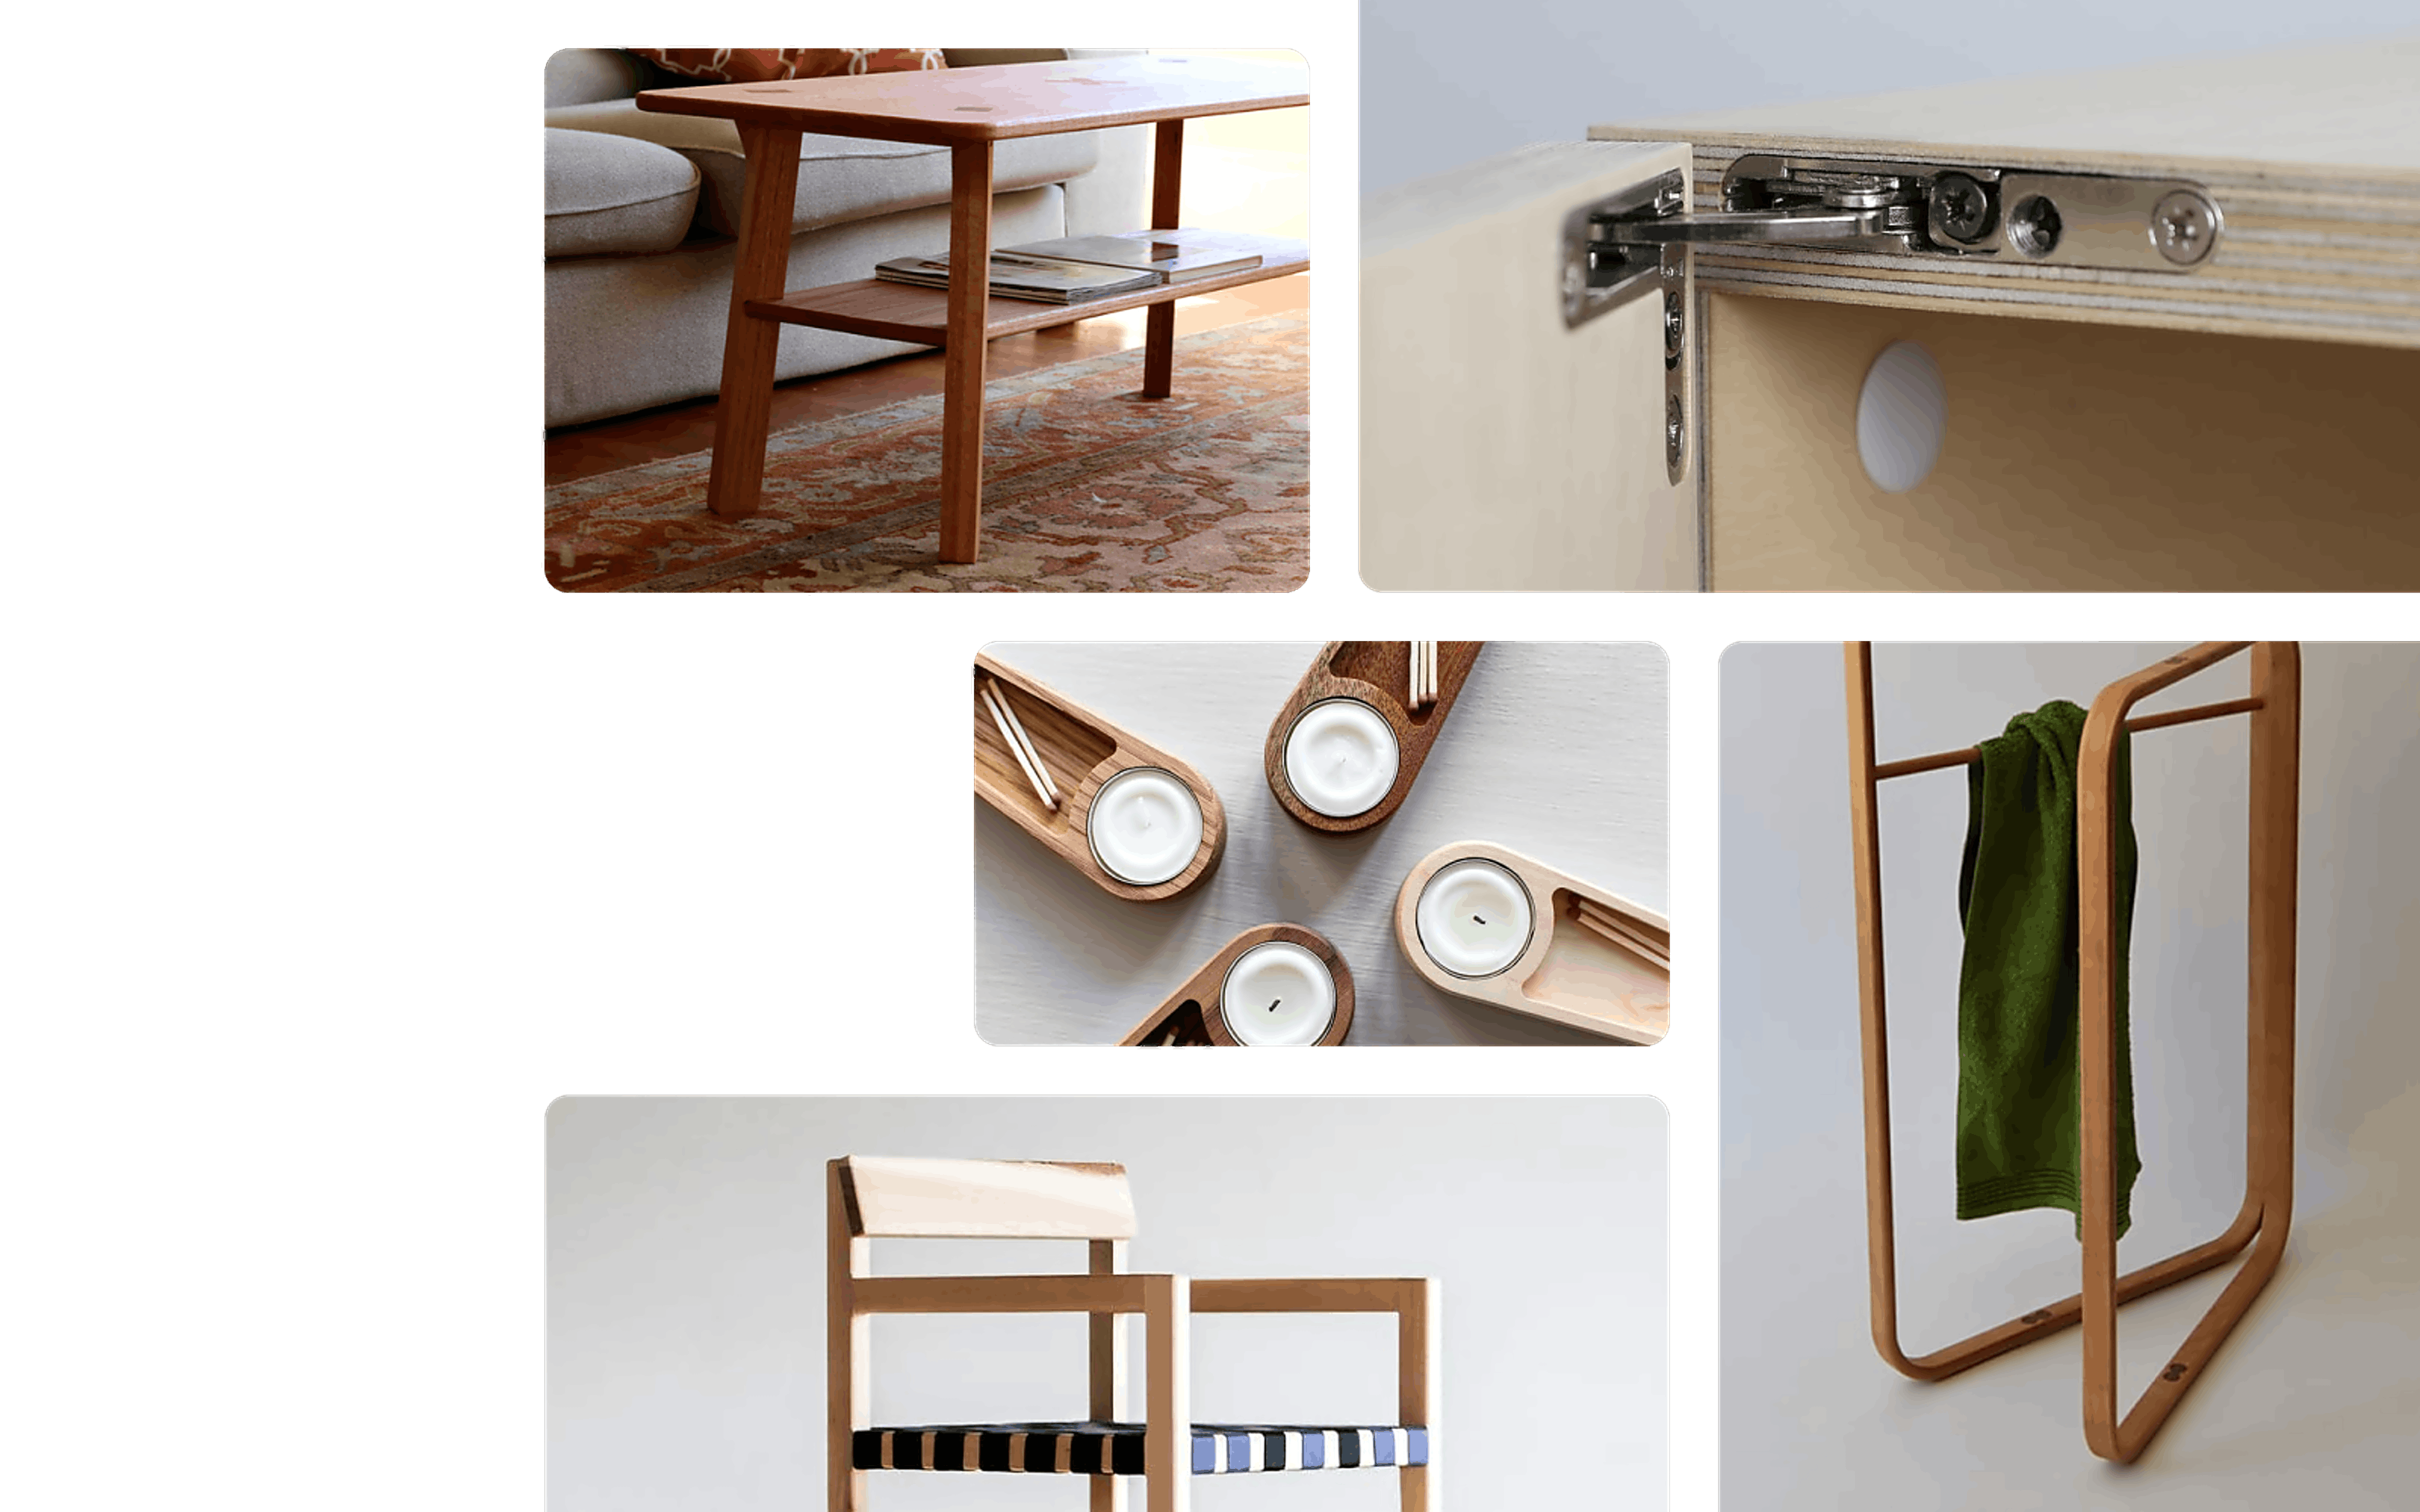 A collage of a coffee table, a cabinet hinge, towel rack, the Stock chair, and candle holders